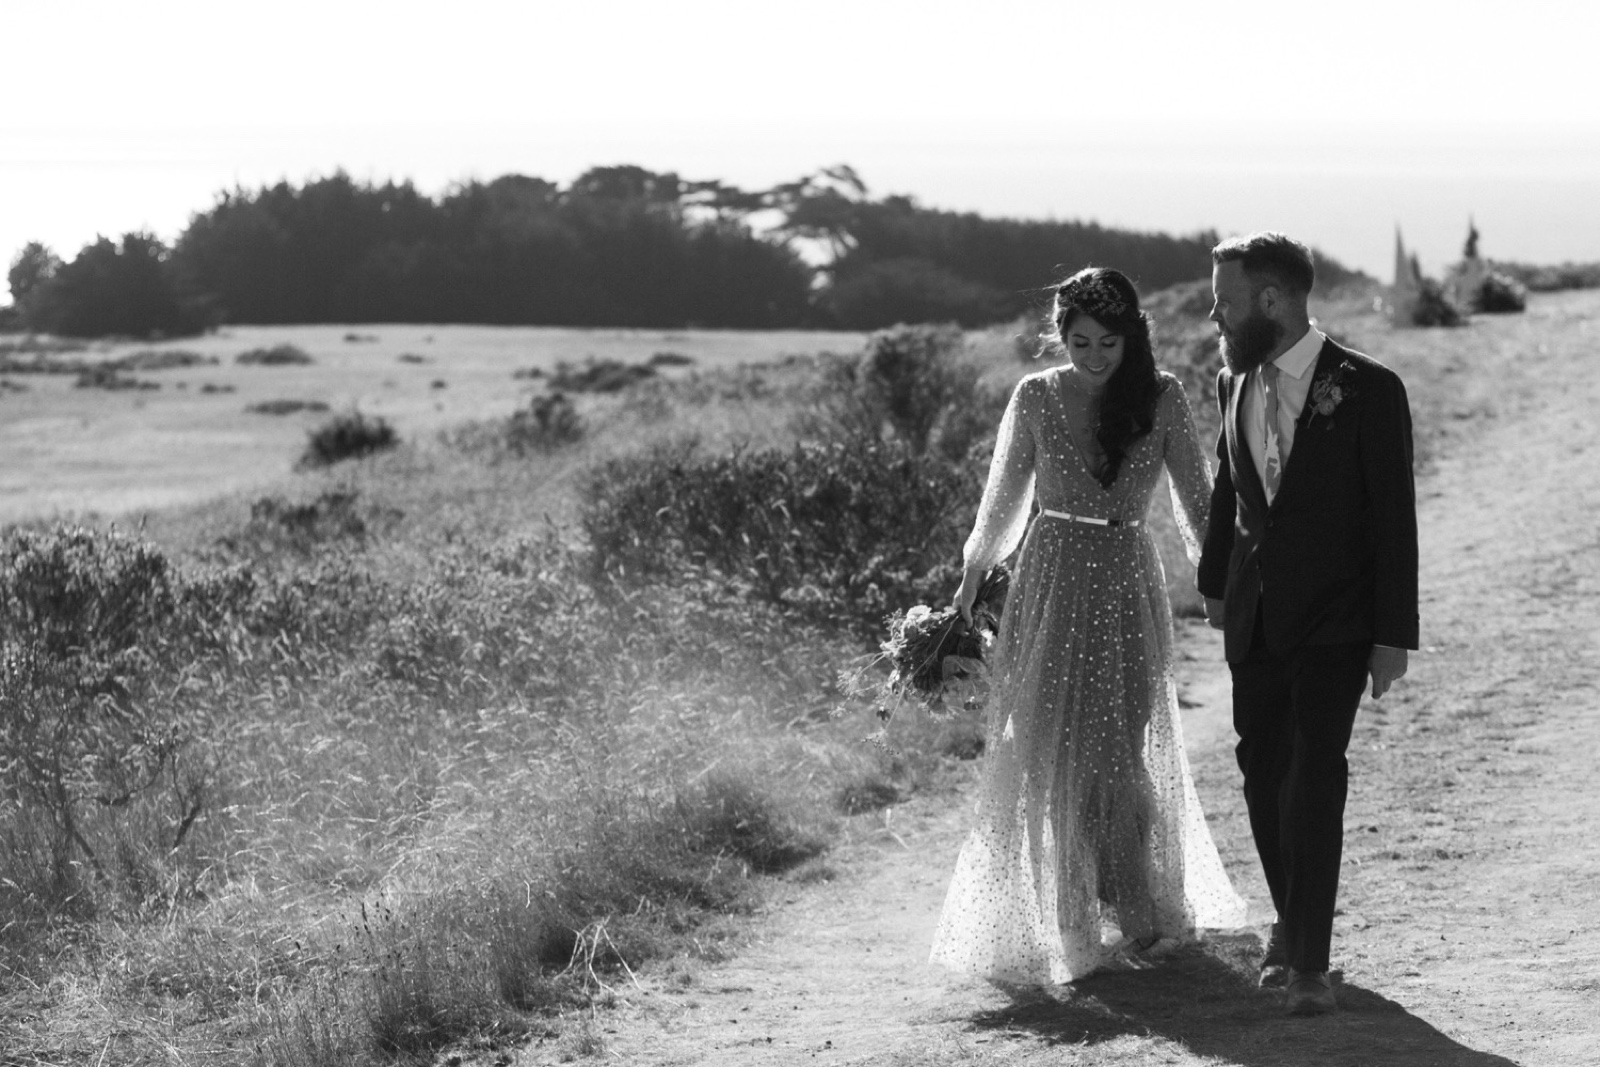 Mendocino_Wedding_Cuffeys_Cove092.JPG